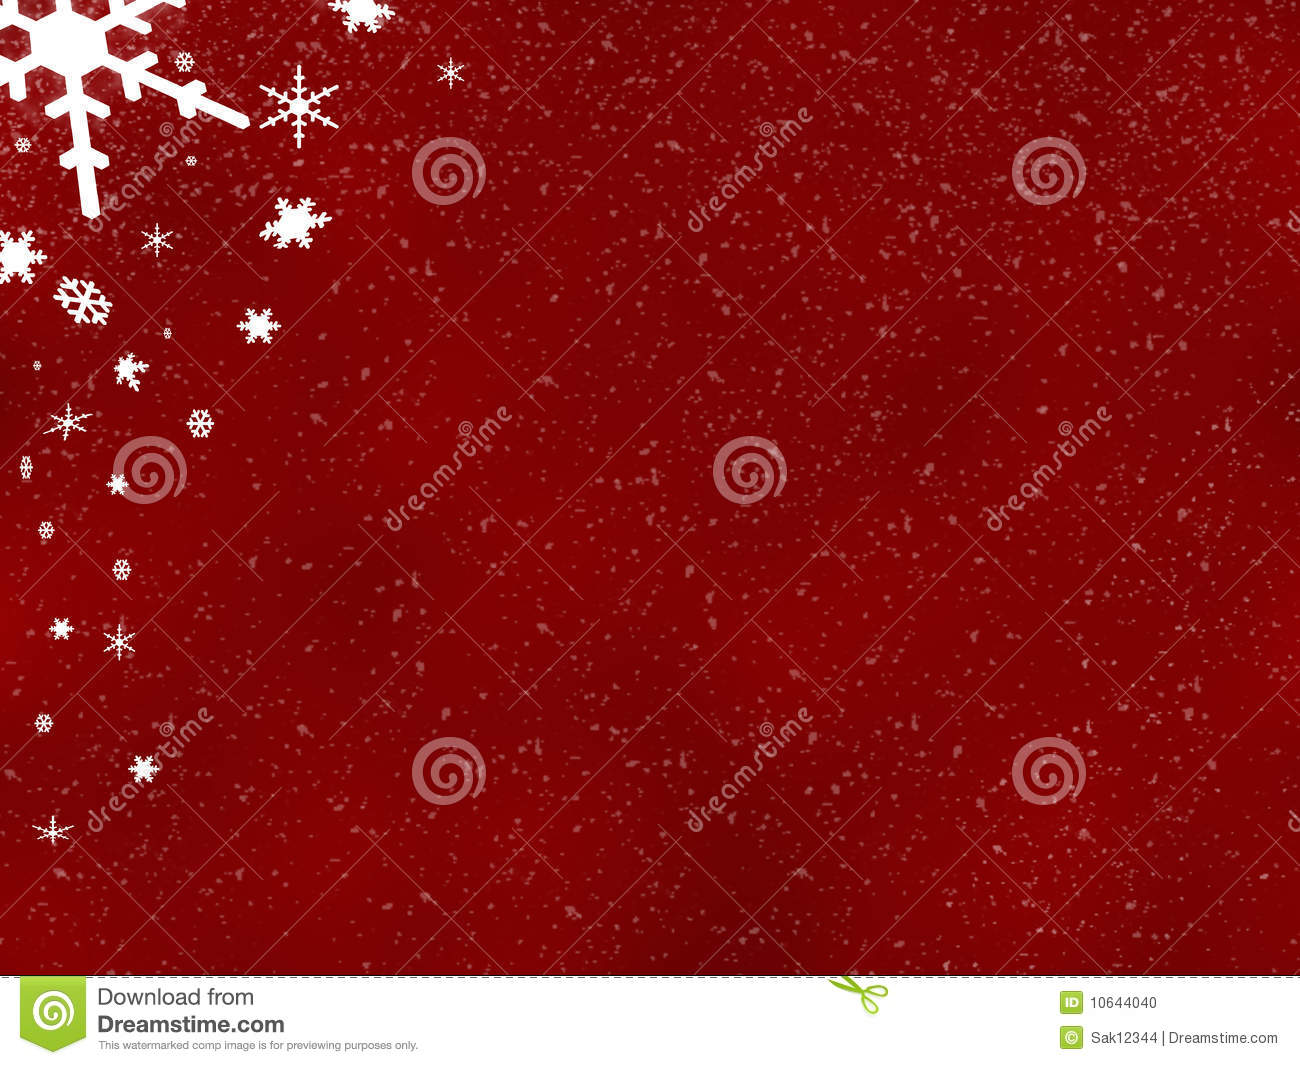 ... rendered red winter/Christmas background with falling snowflakes